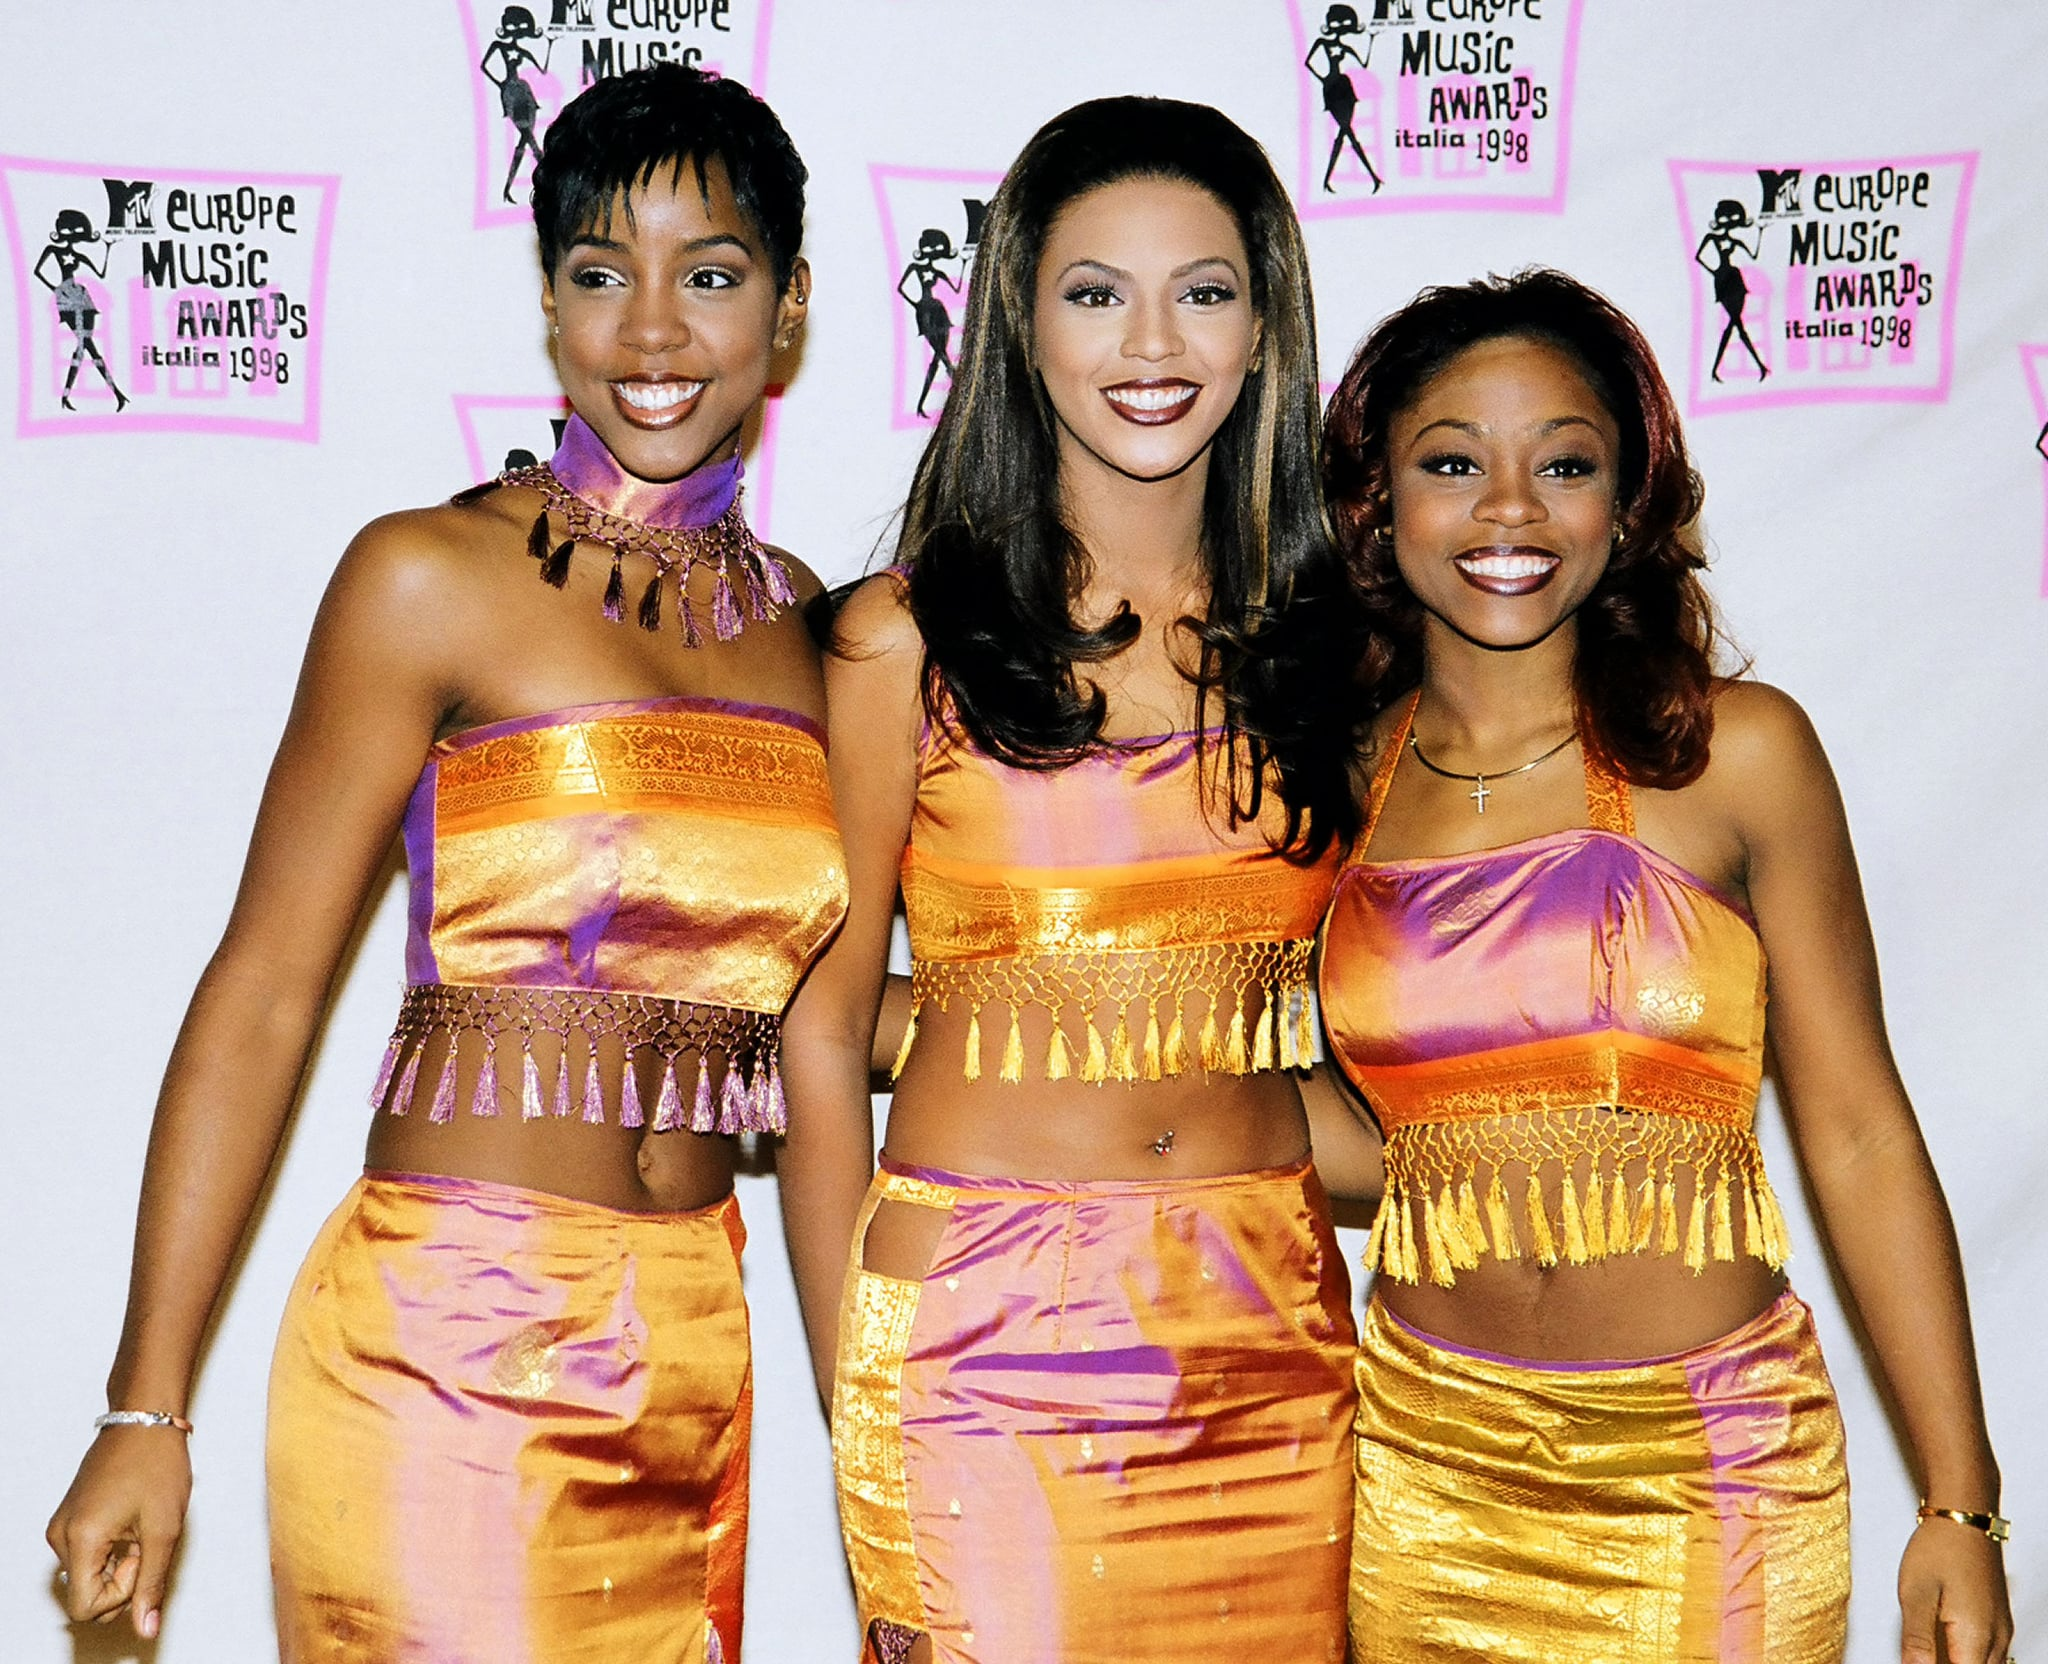 Destiny's Child during 1998 MTV European Music Awards in Milan, Italy. (Photo by Jeff Kravitz/FilmMagic, Inc)